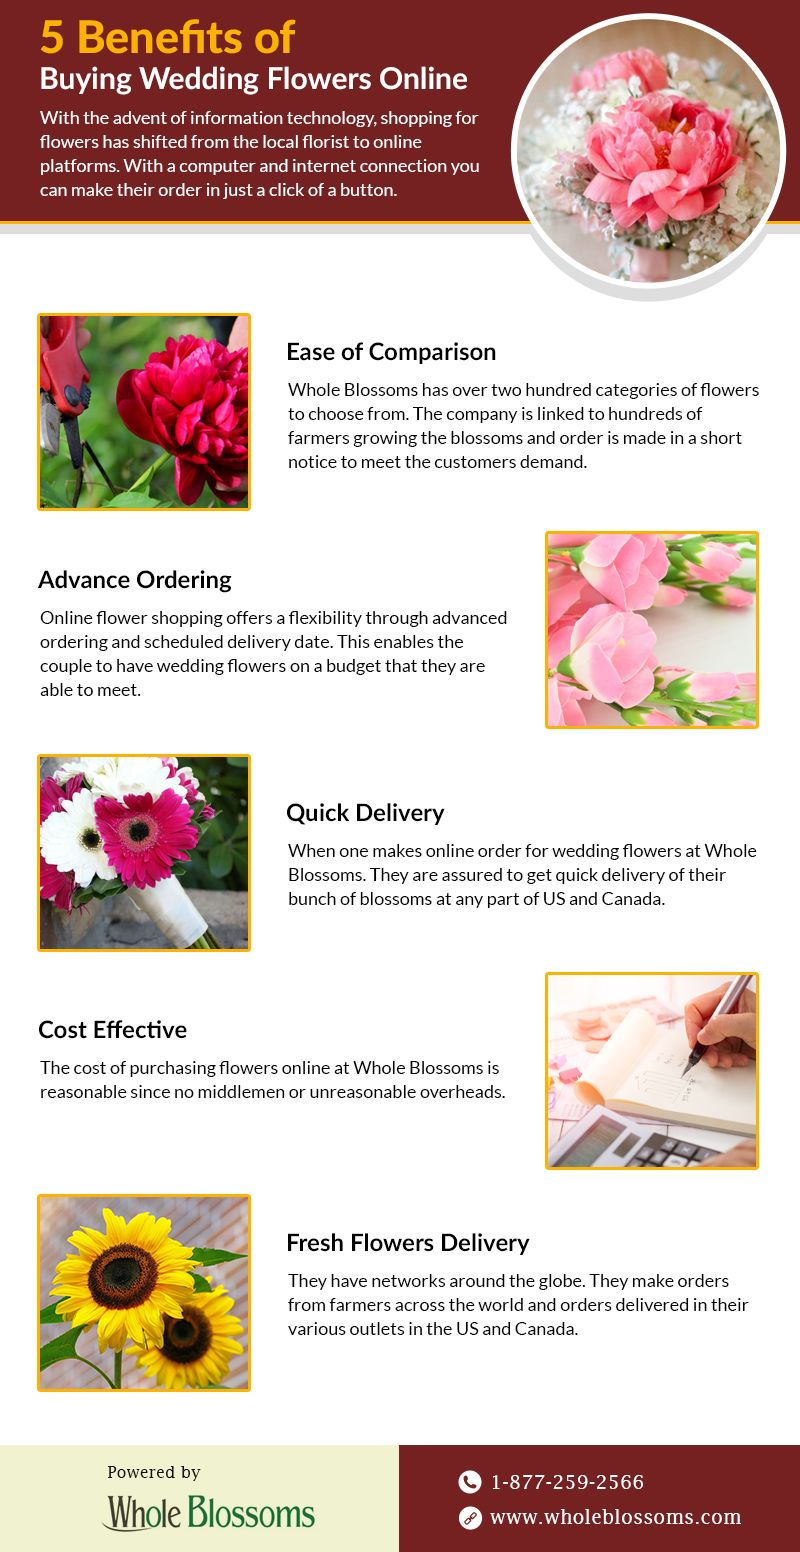 Whole Blossoms Is Online Flower Specialist That Has Thousands Of